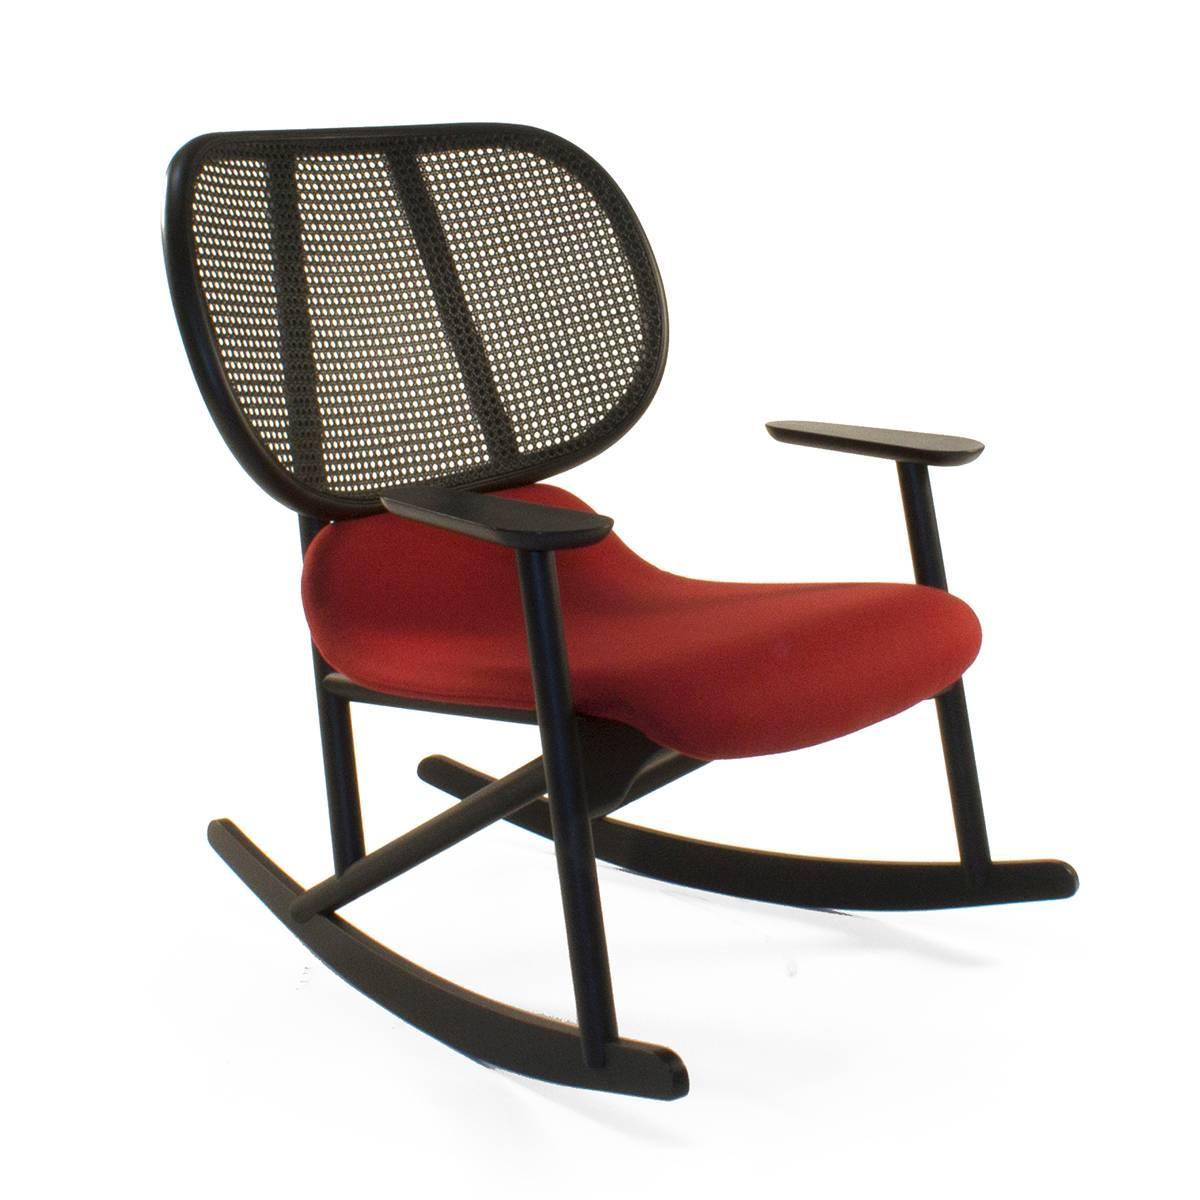 moroso klara rocking lounge chair by patricia urquiola italy for sale at 1stdibs. Black Bedroom Furniture Sets. Home Design Ideas